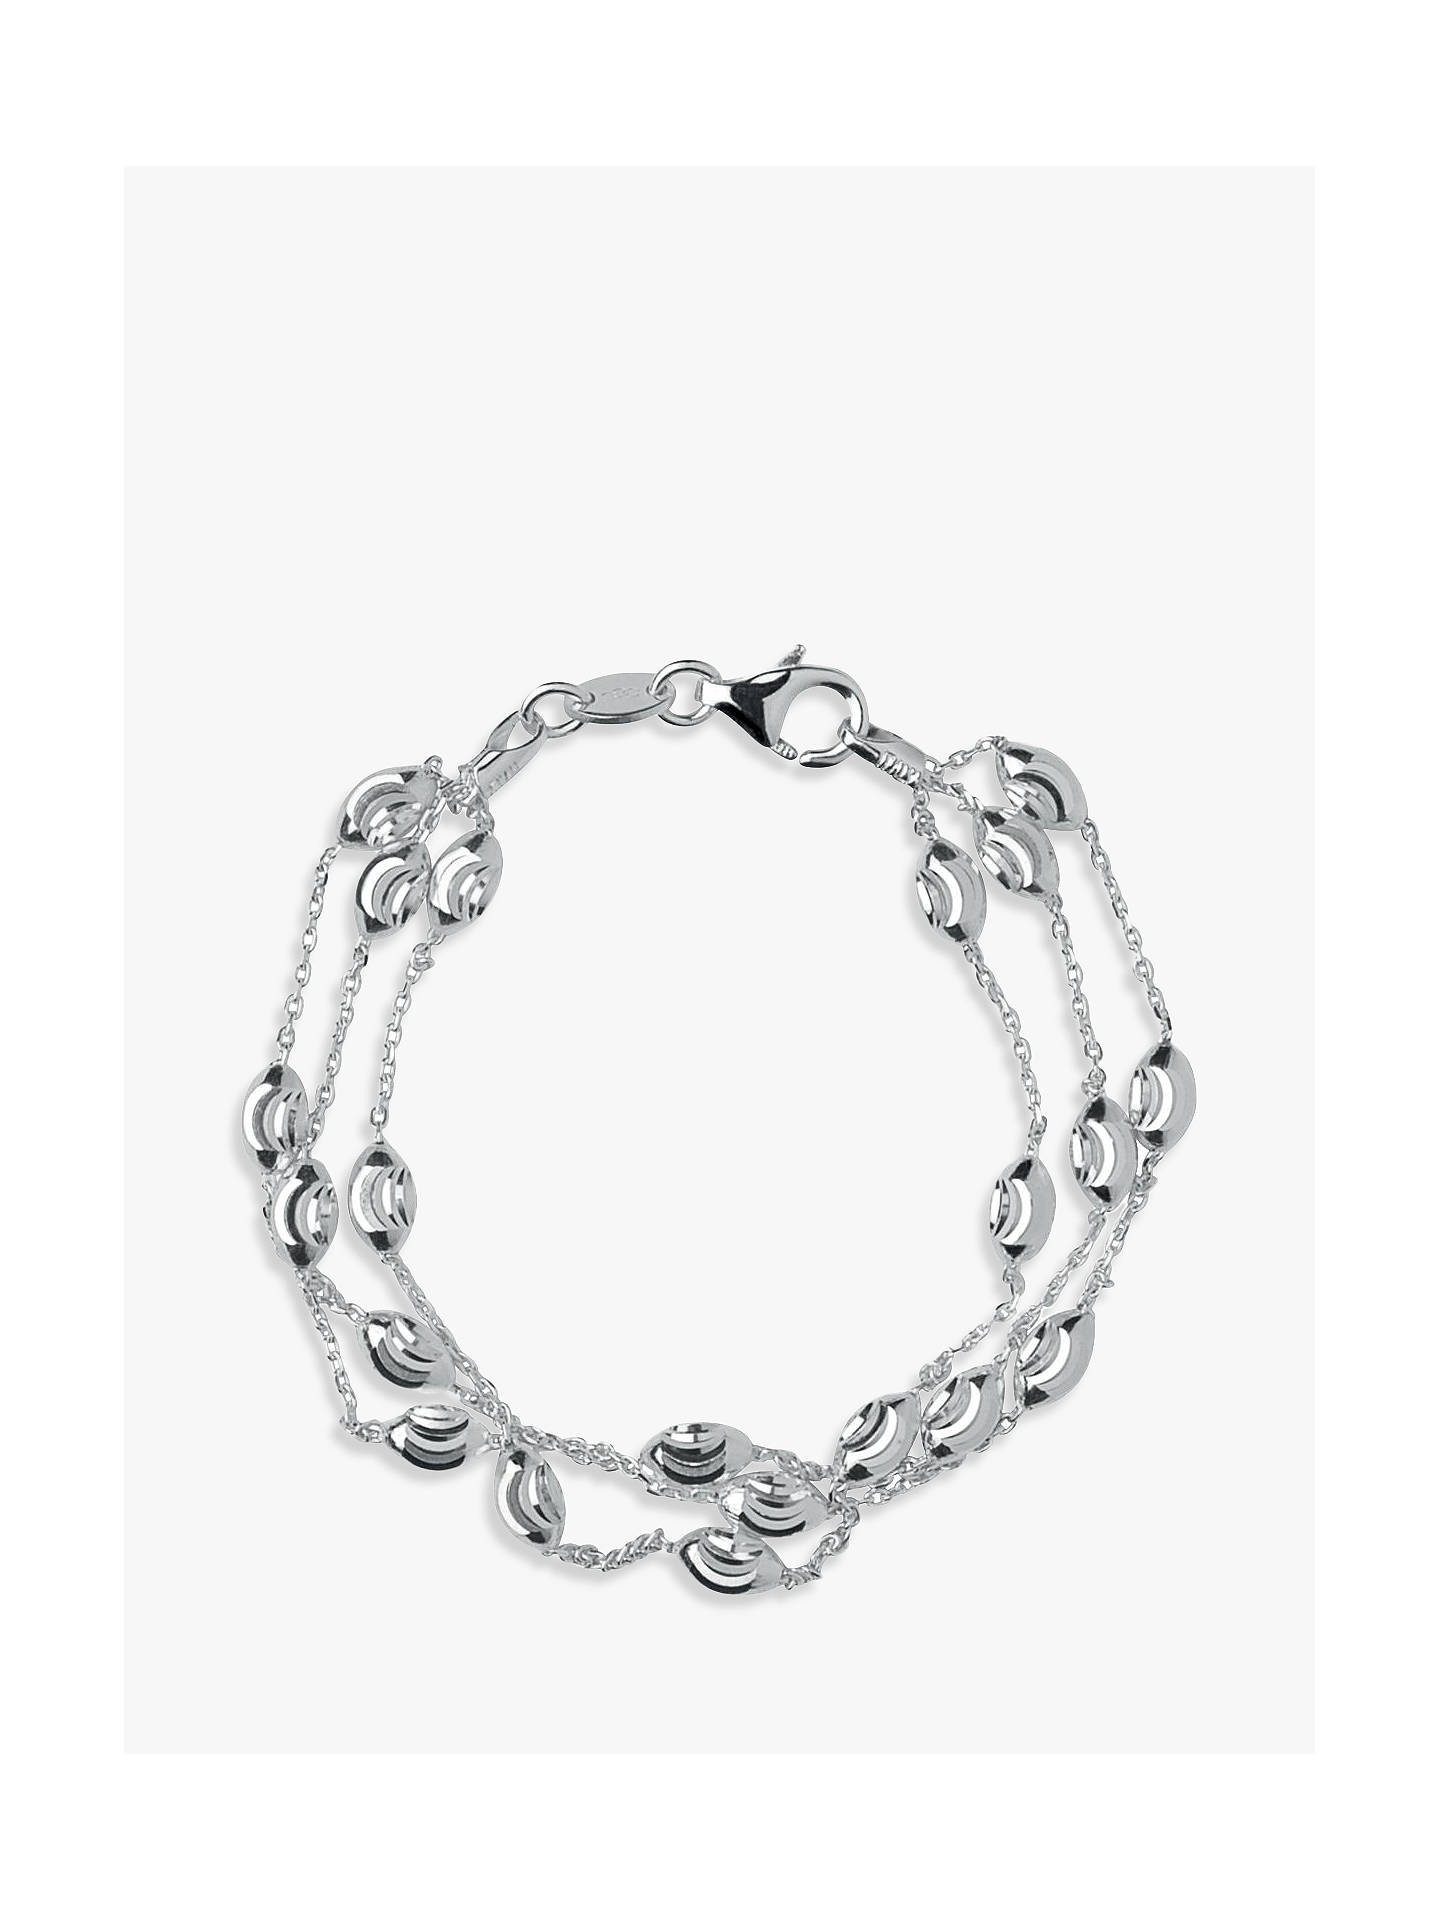 d1f584b1399d Buy Links of London Essentials Sterling Silver Beaded Chain 3 Row Bracelet